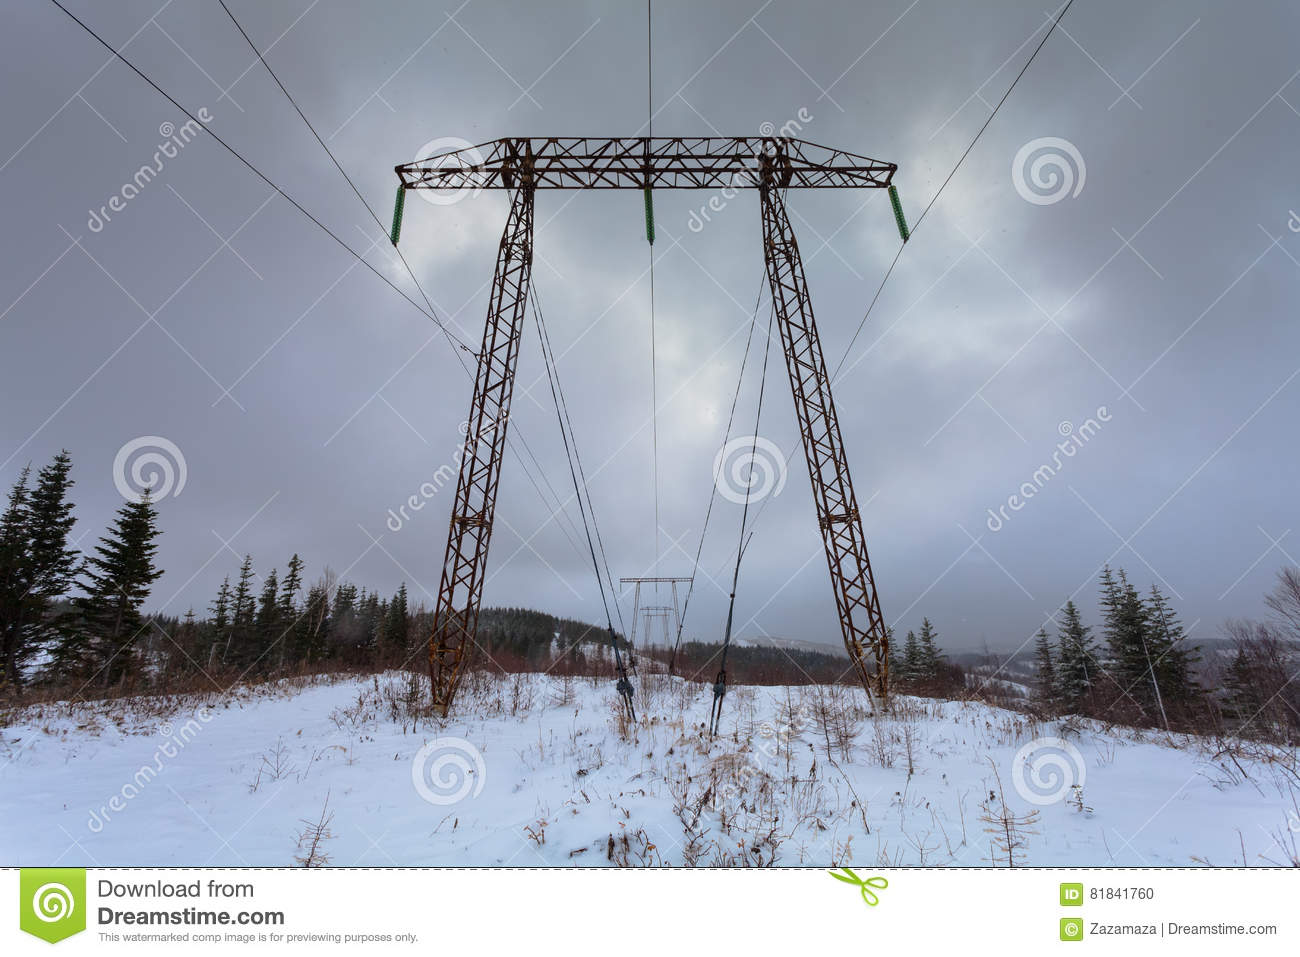 Electricity transmission power lines on winter background High voltage tower. Metal electricity transmission pylon.